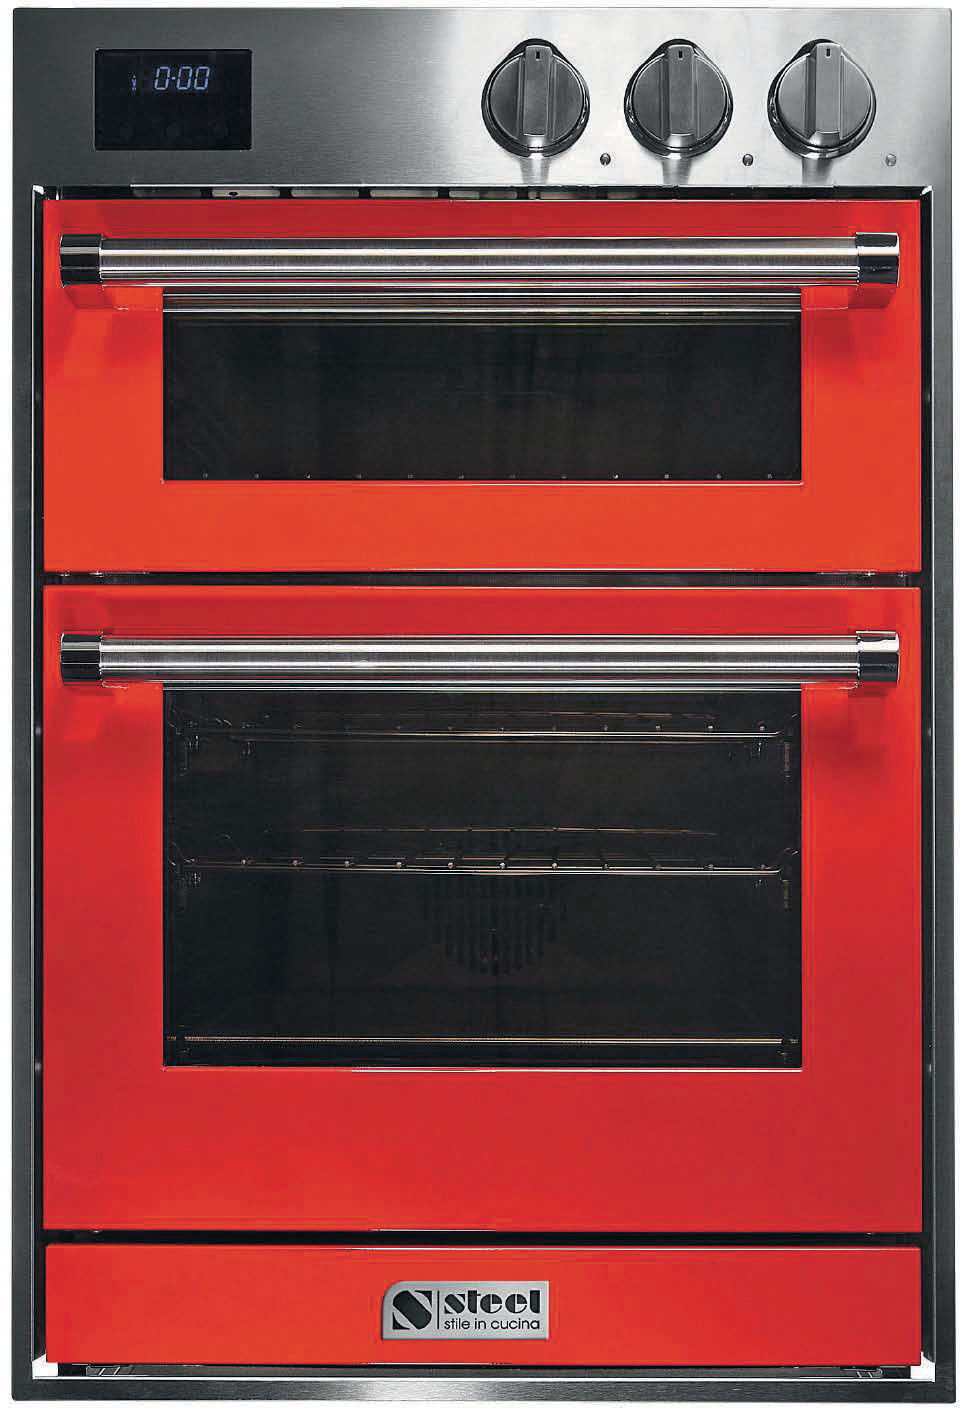 Oven essentials: The best on the market